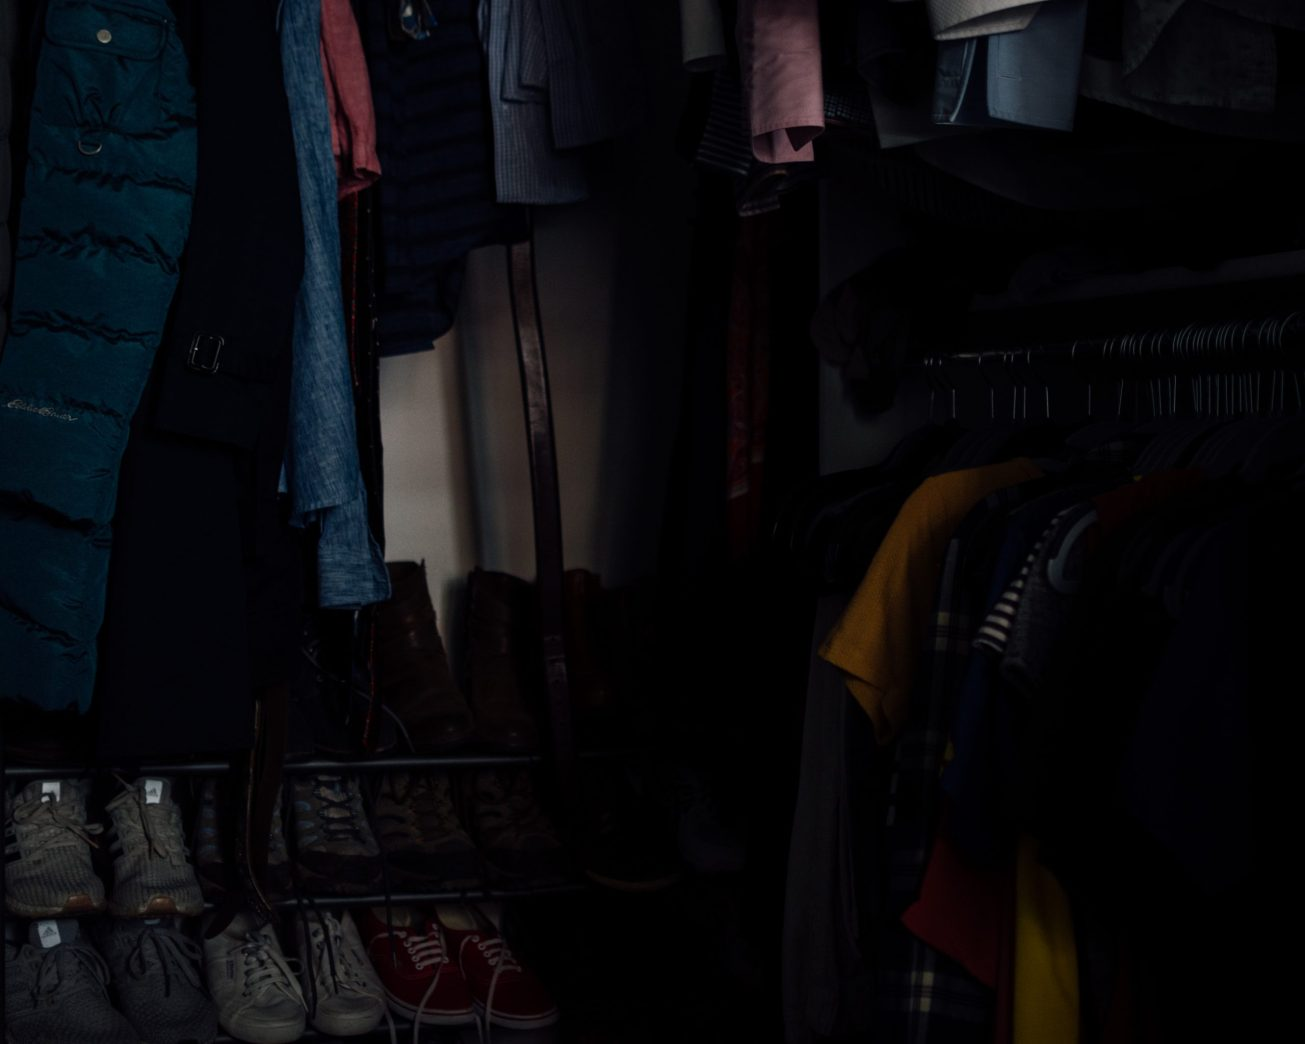 Photo of the inside of a walk-in closet.